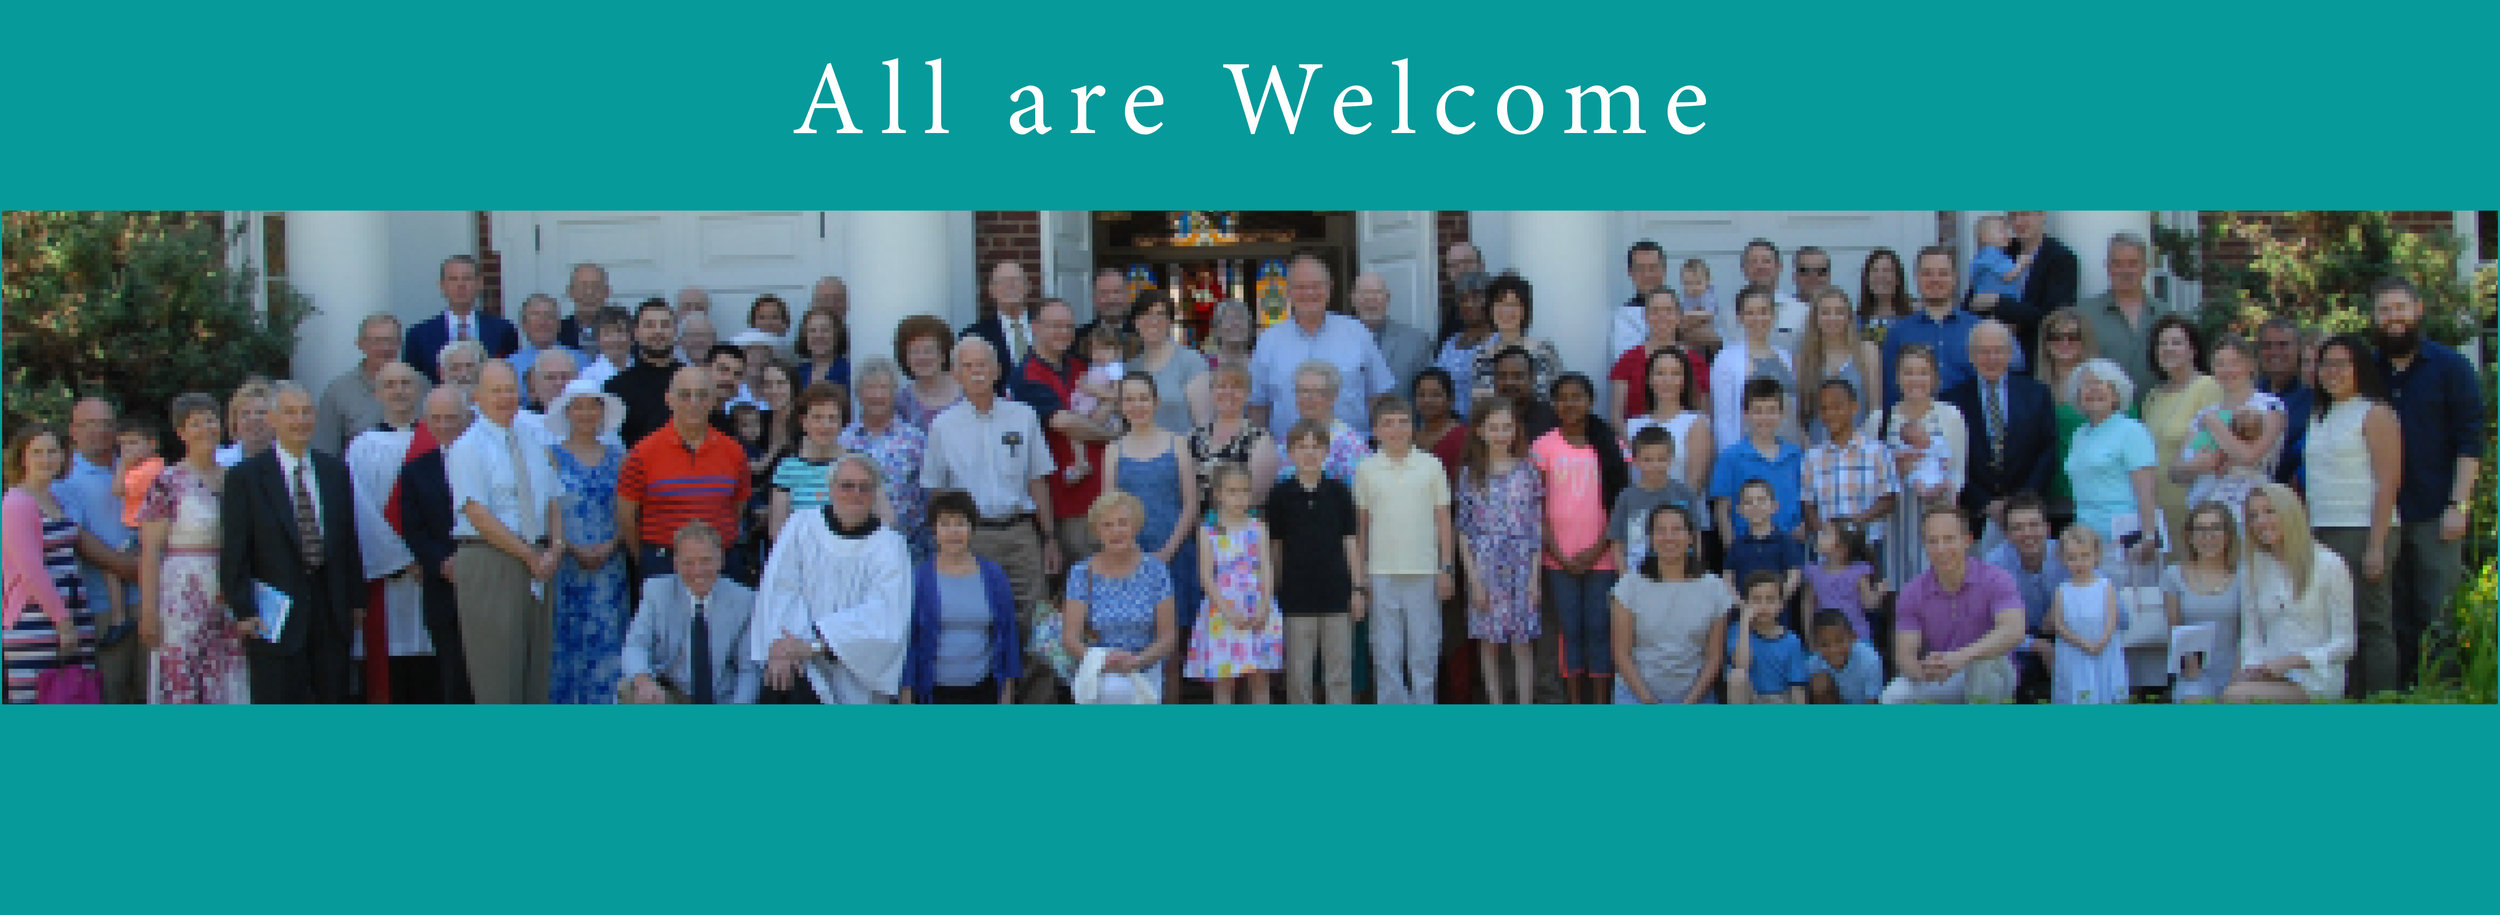 all welcome banner.jpg